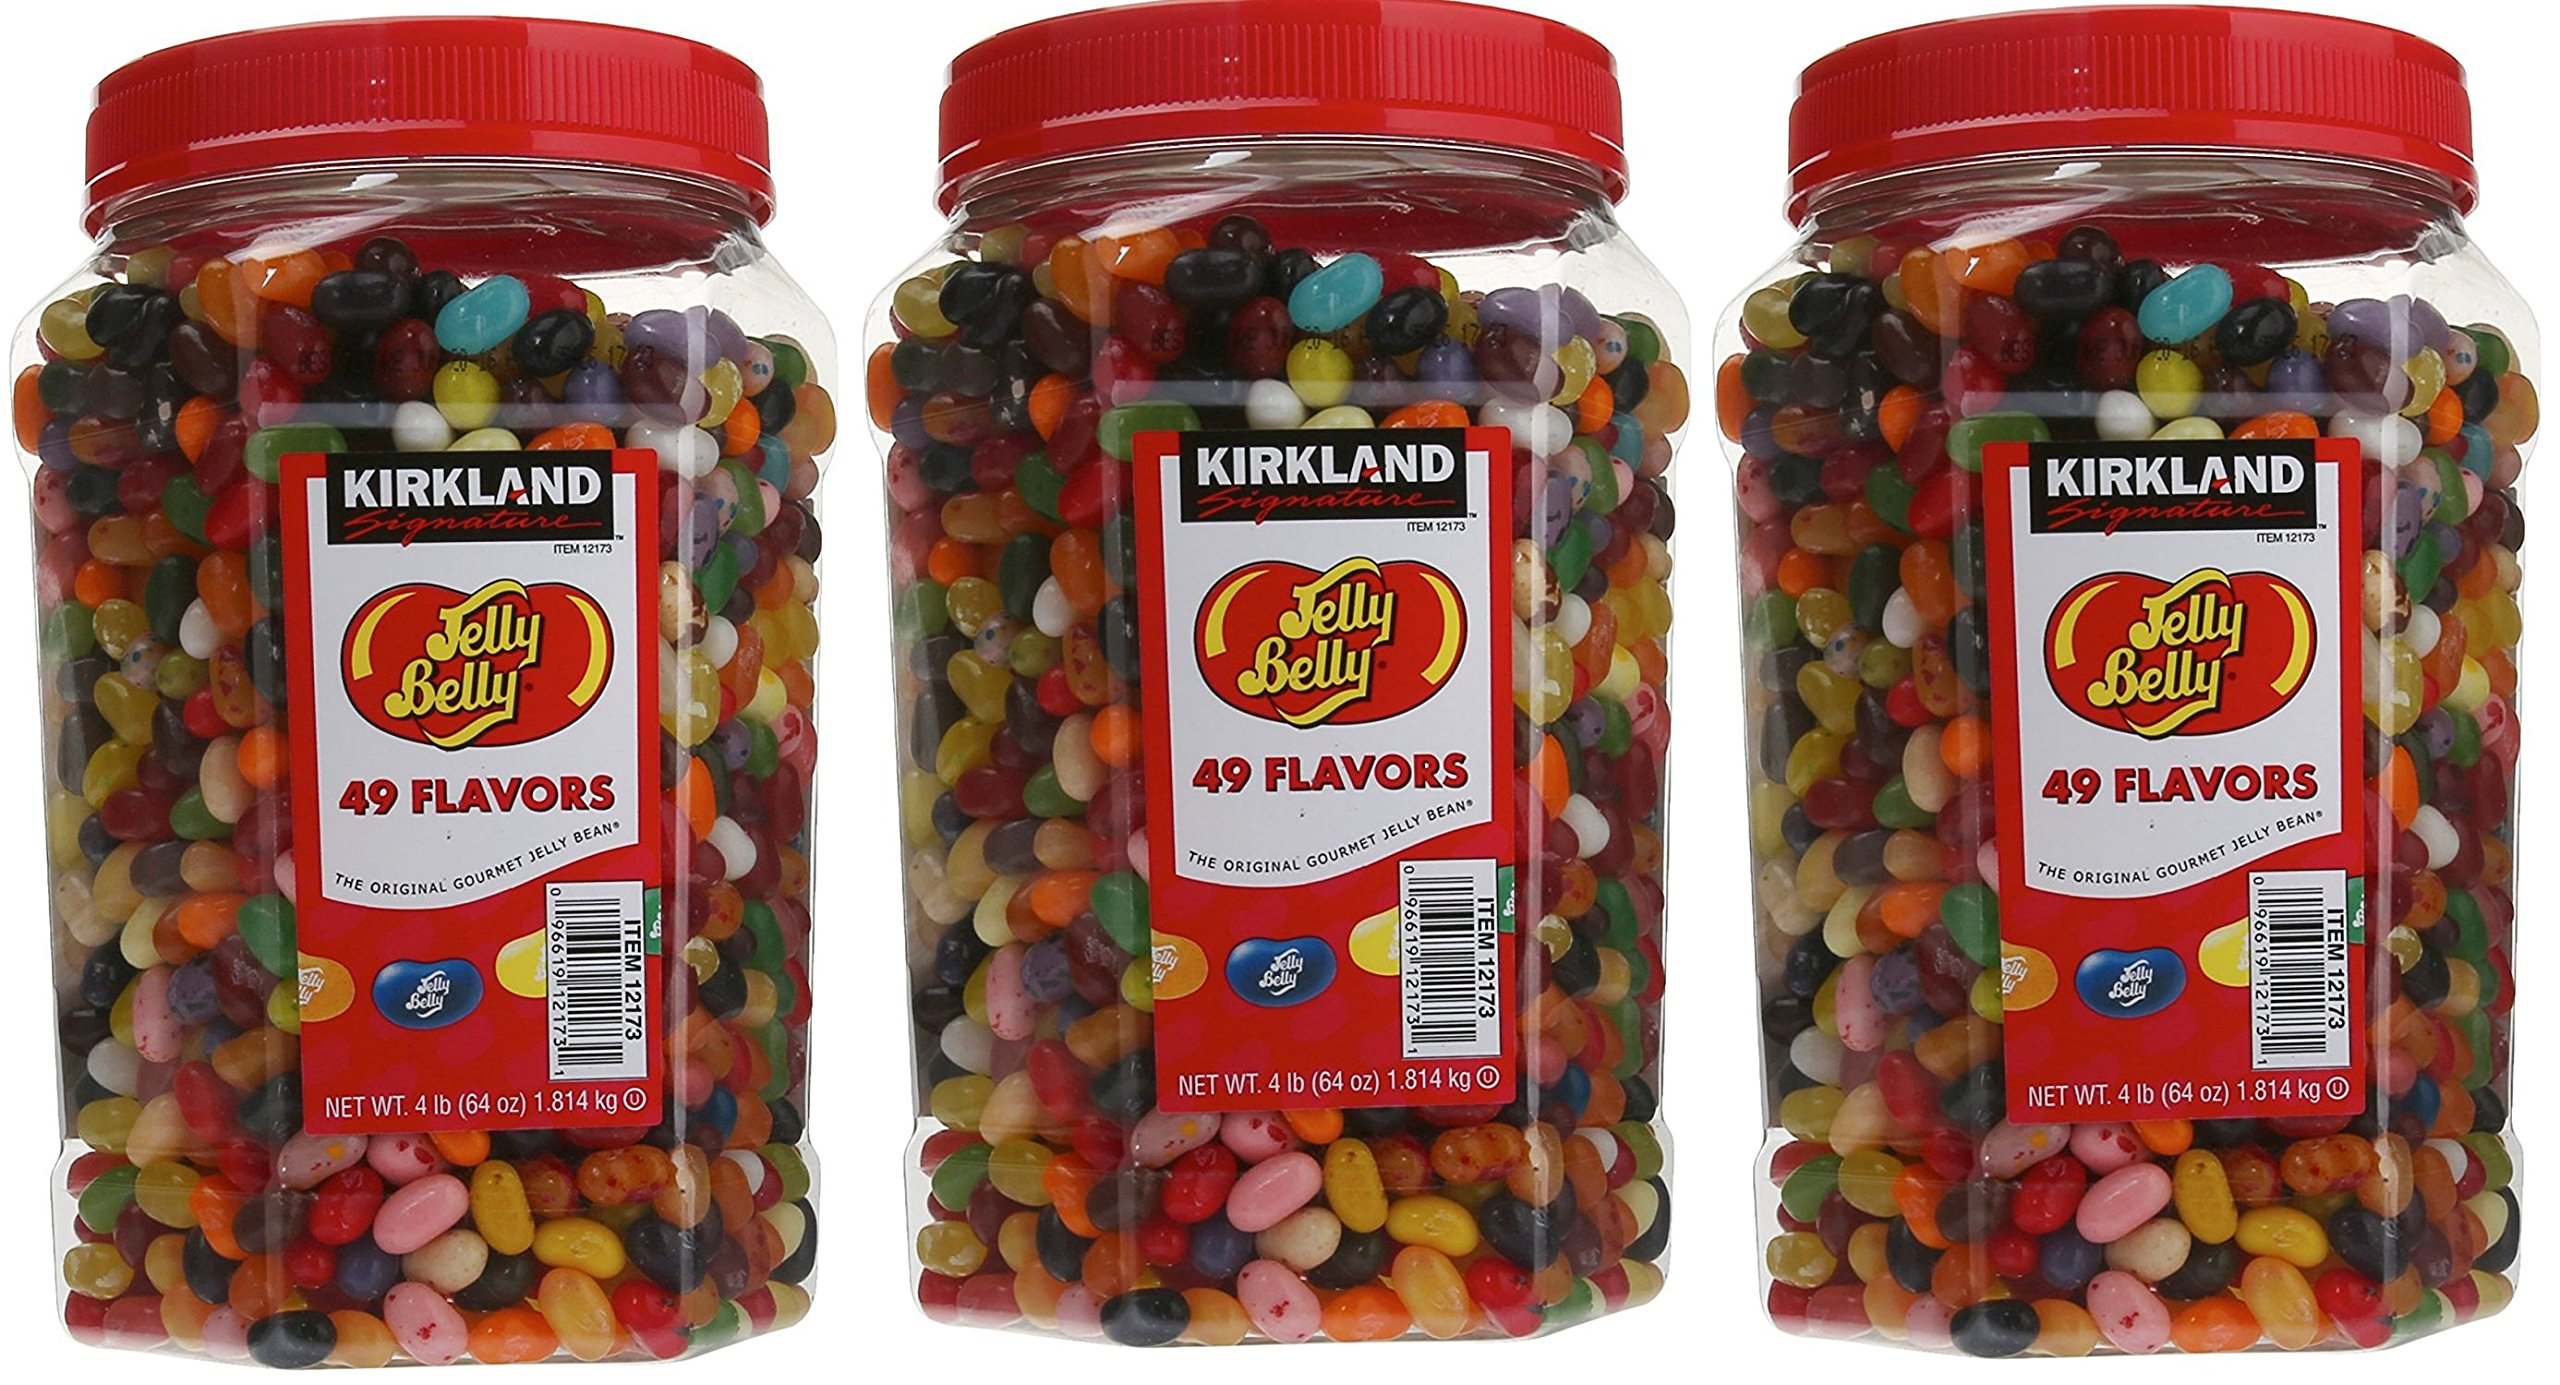 Kirkland Signature Jelly Belly Jelly Beans, 12 Pounds by Kirkland Signature